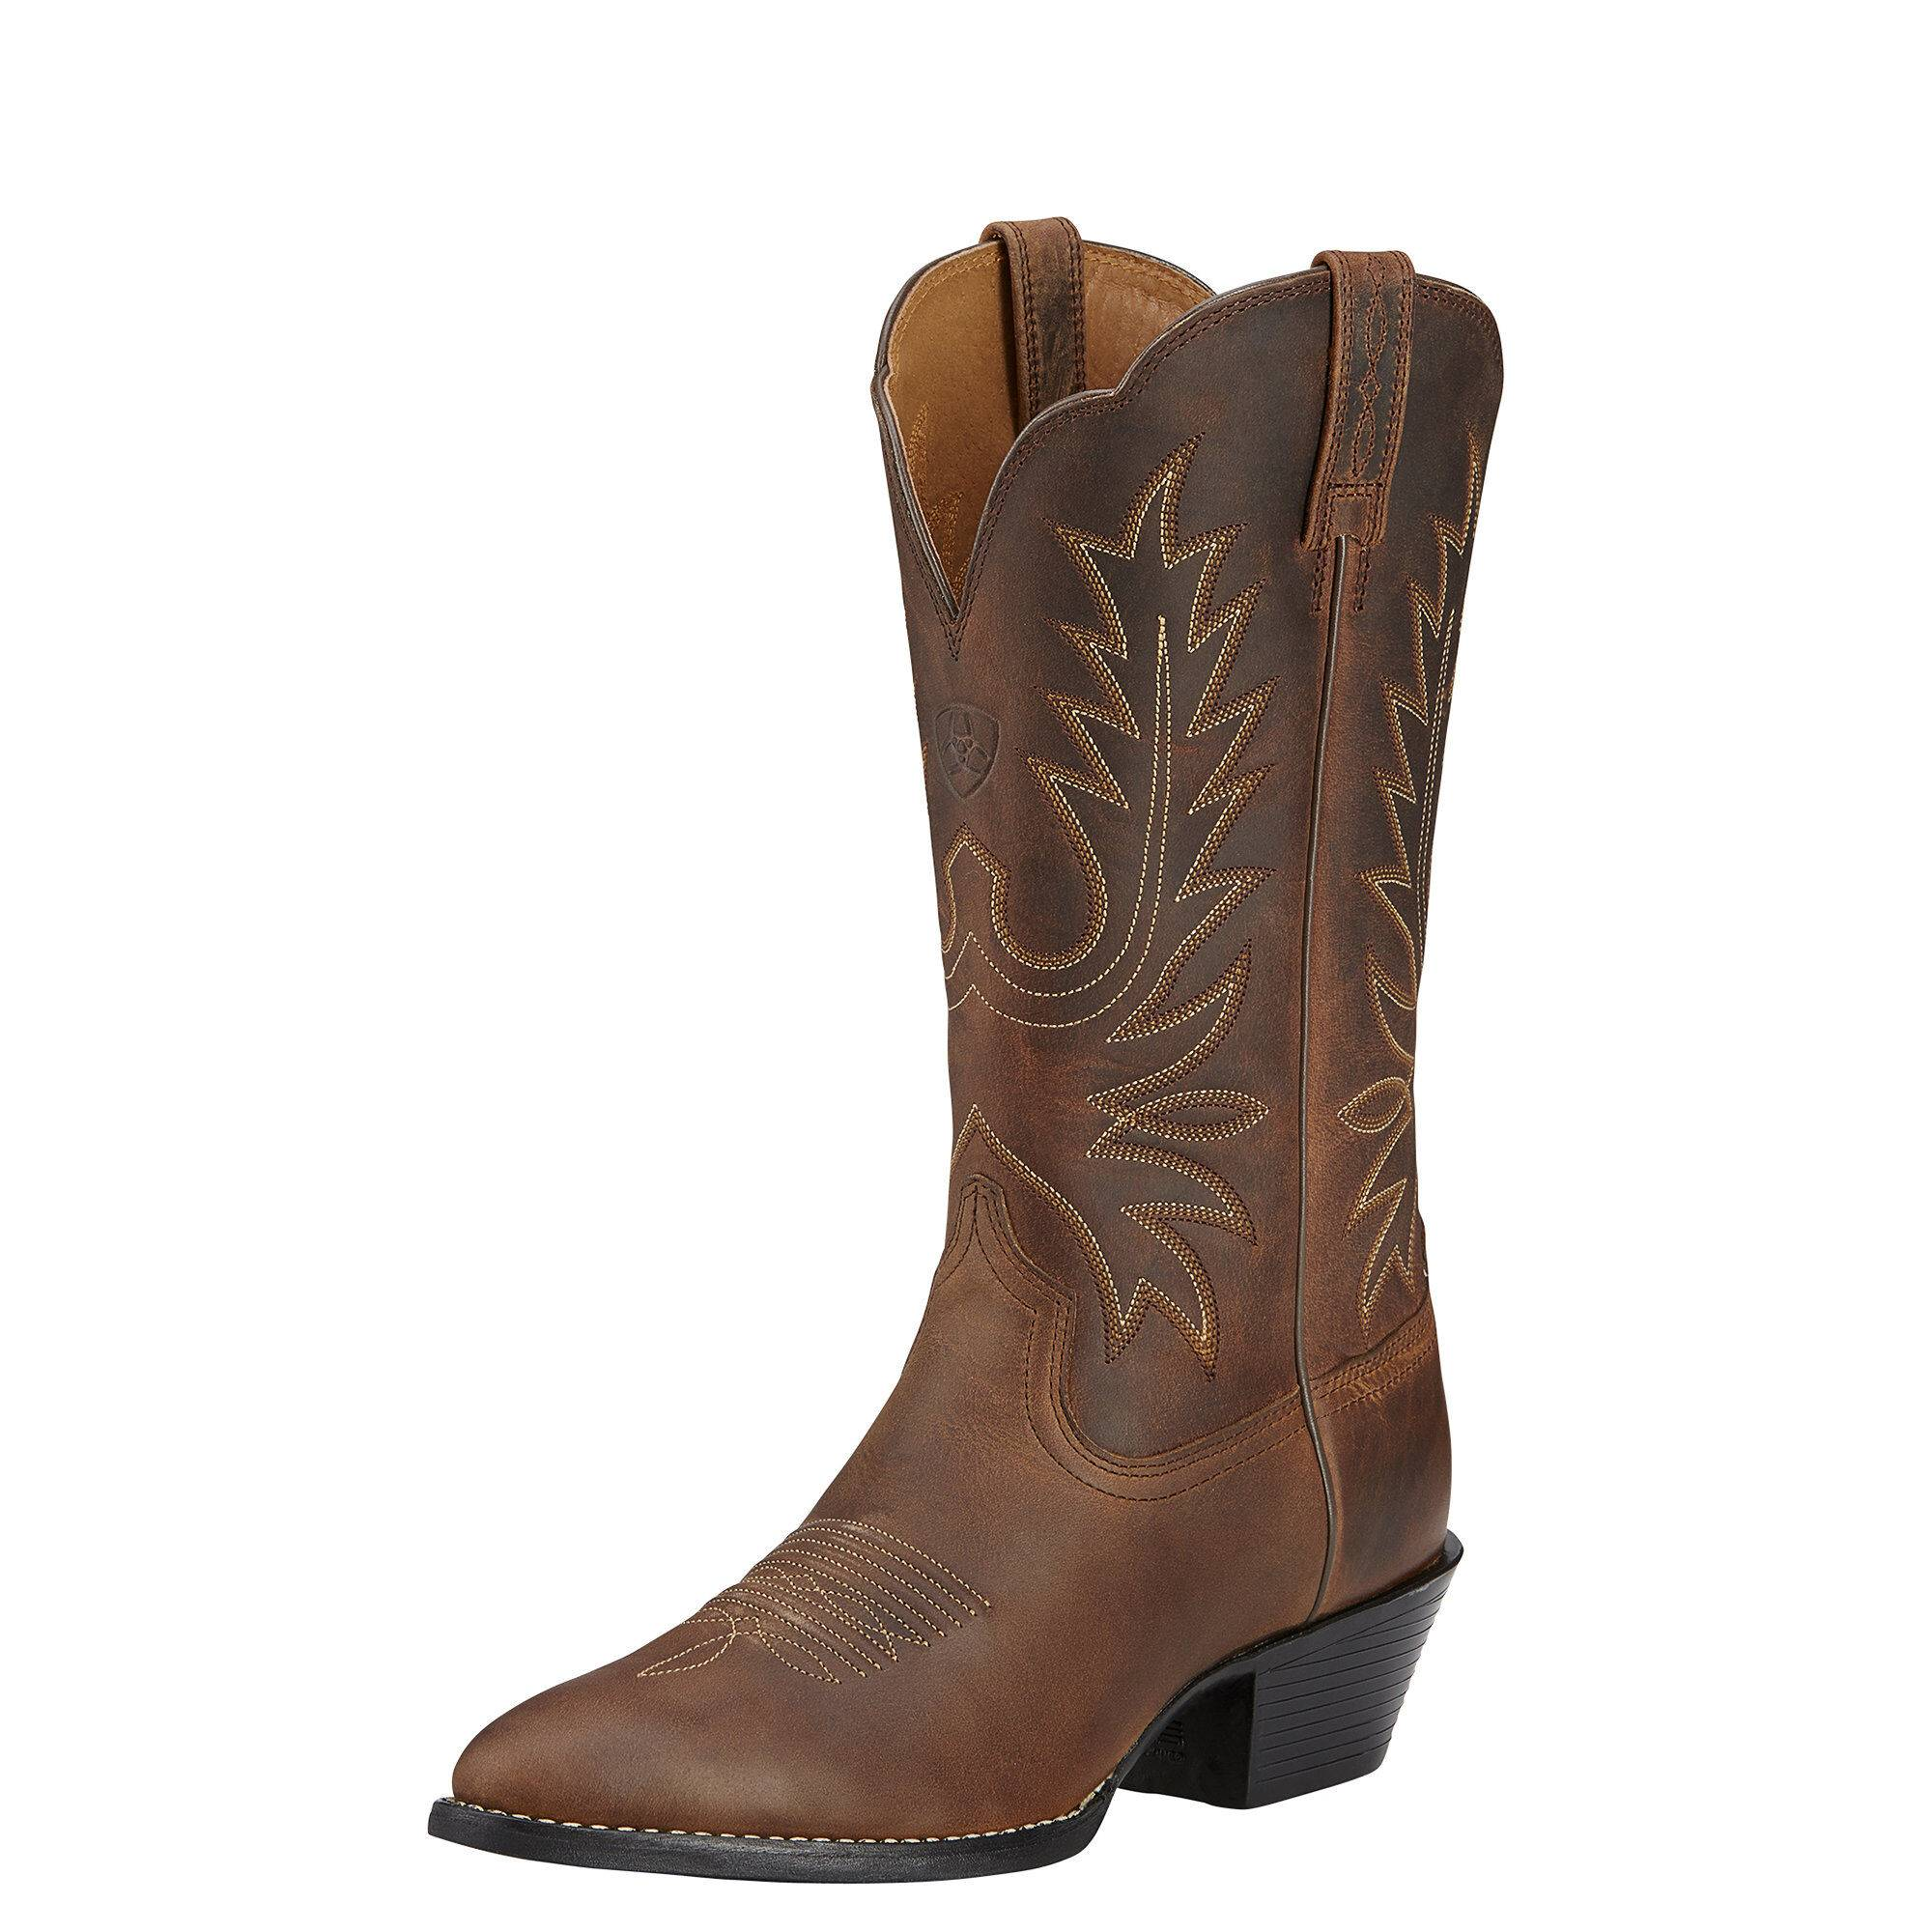 Ariat Women's Heritage R Toe Western Boots in Distressed Brown, Size 10 B / Medium by Ariat